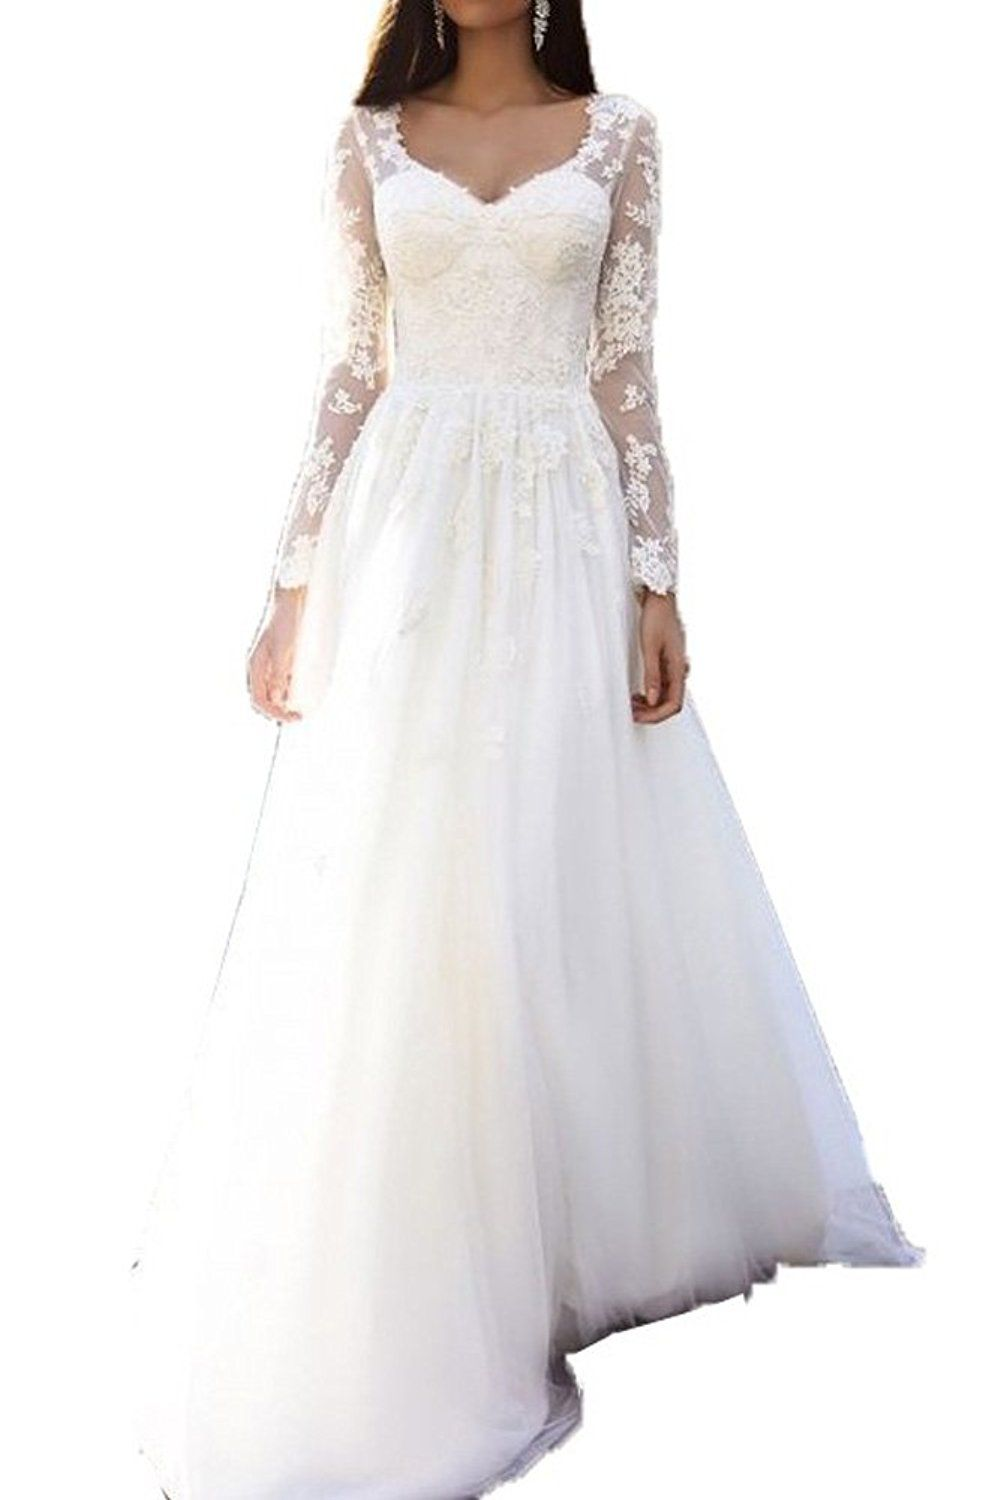 Fanmu long sleeves v neck lace appliques tulle wedding dresses